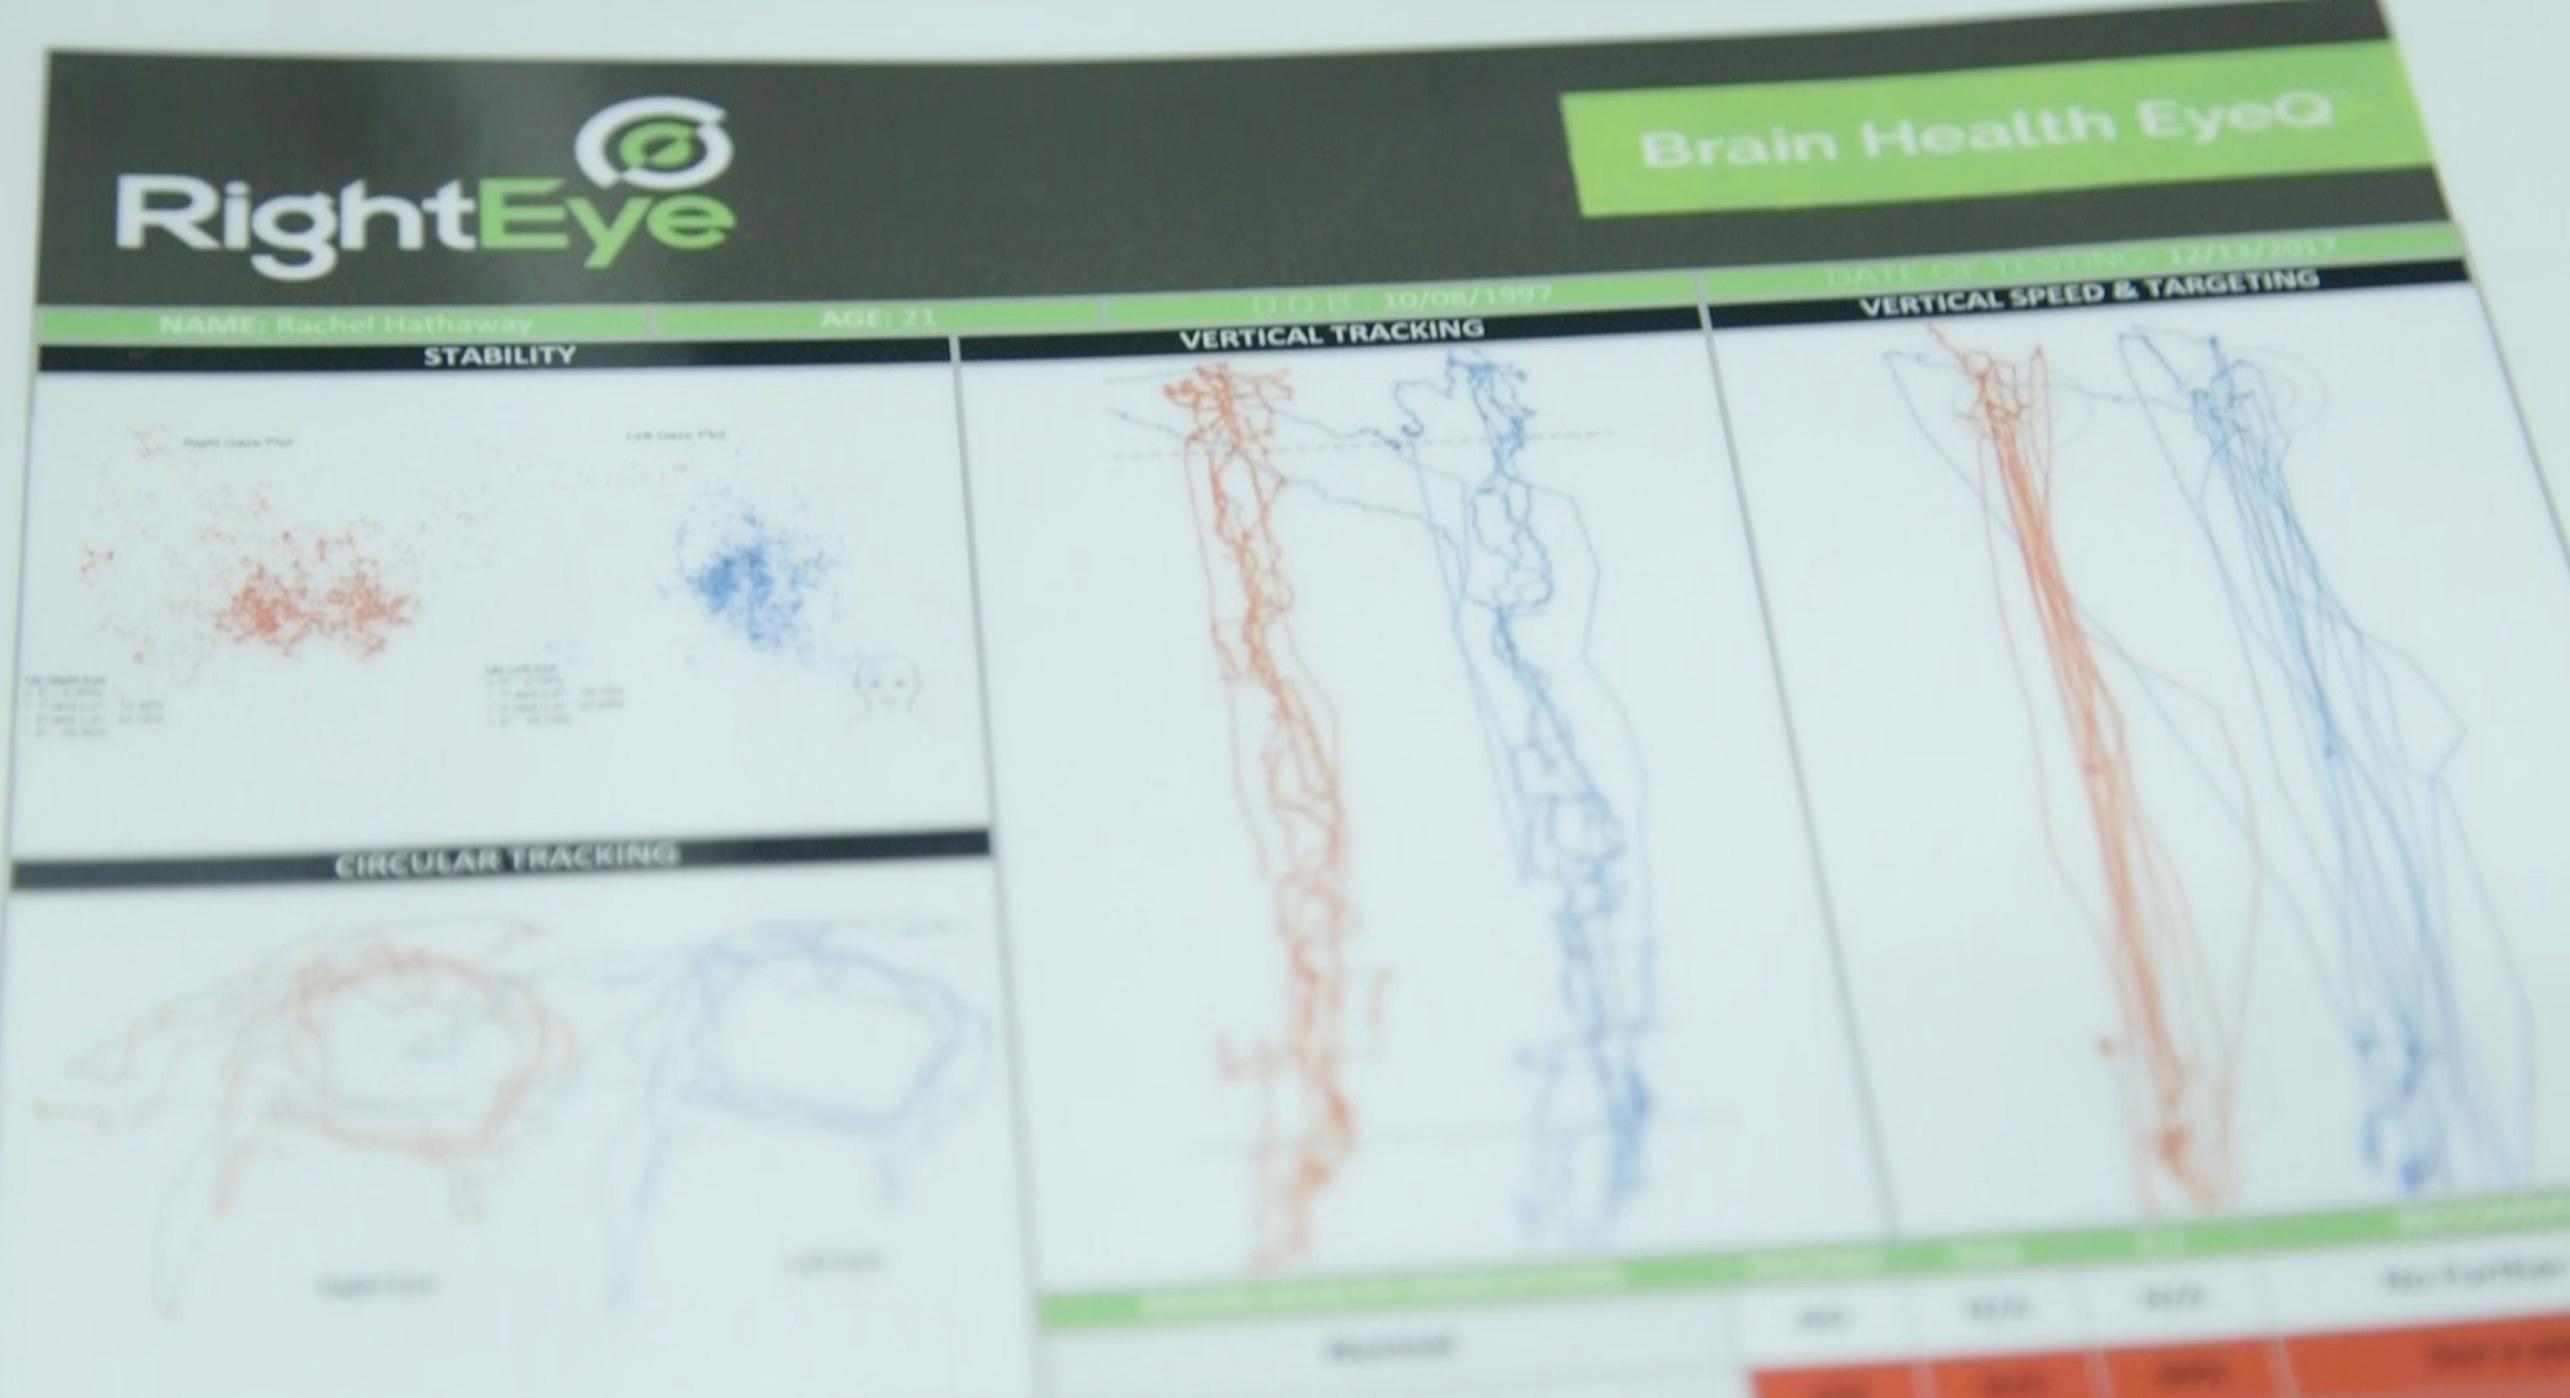 RightEye eye-tracking tests for health